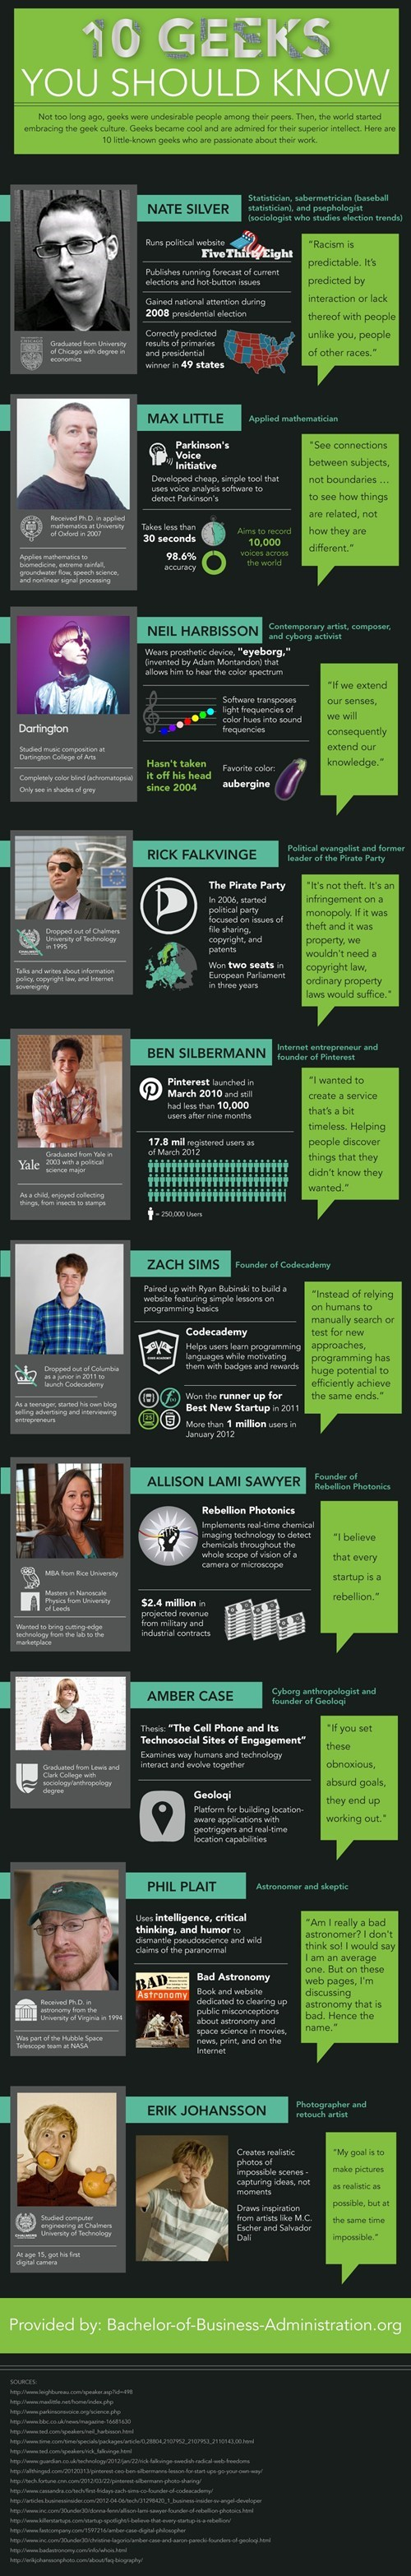 Get to Know a Geek